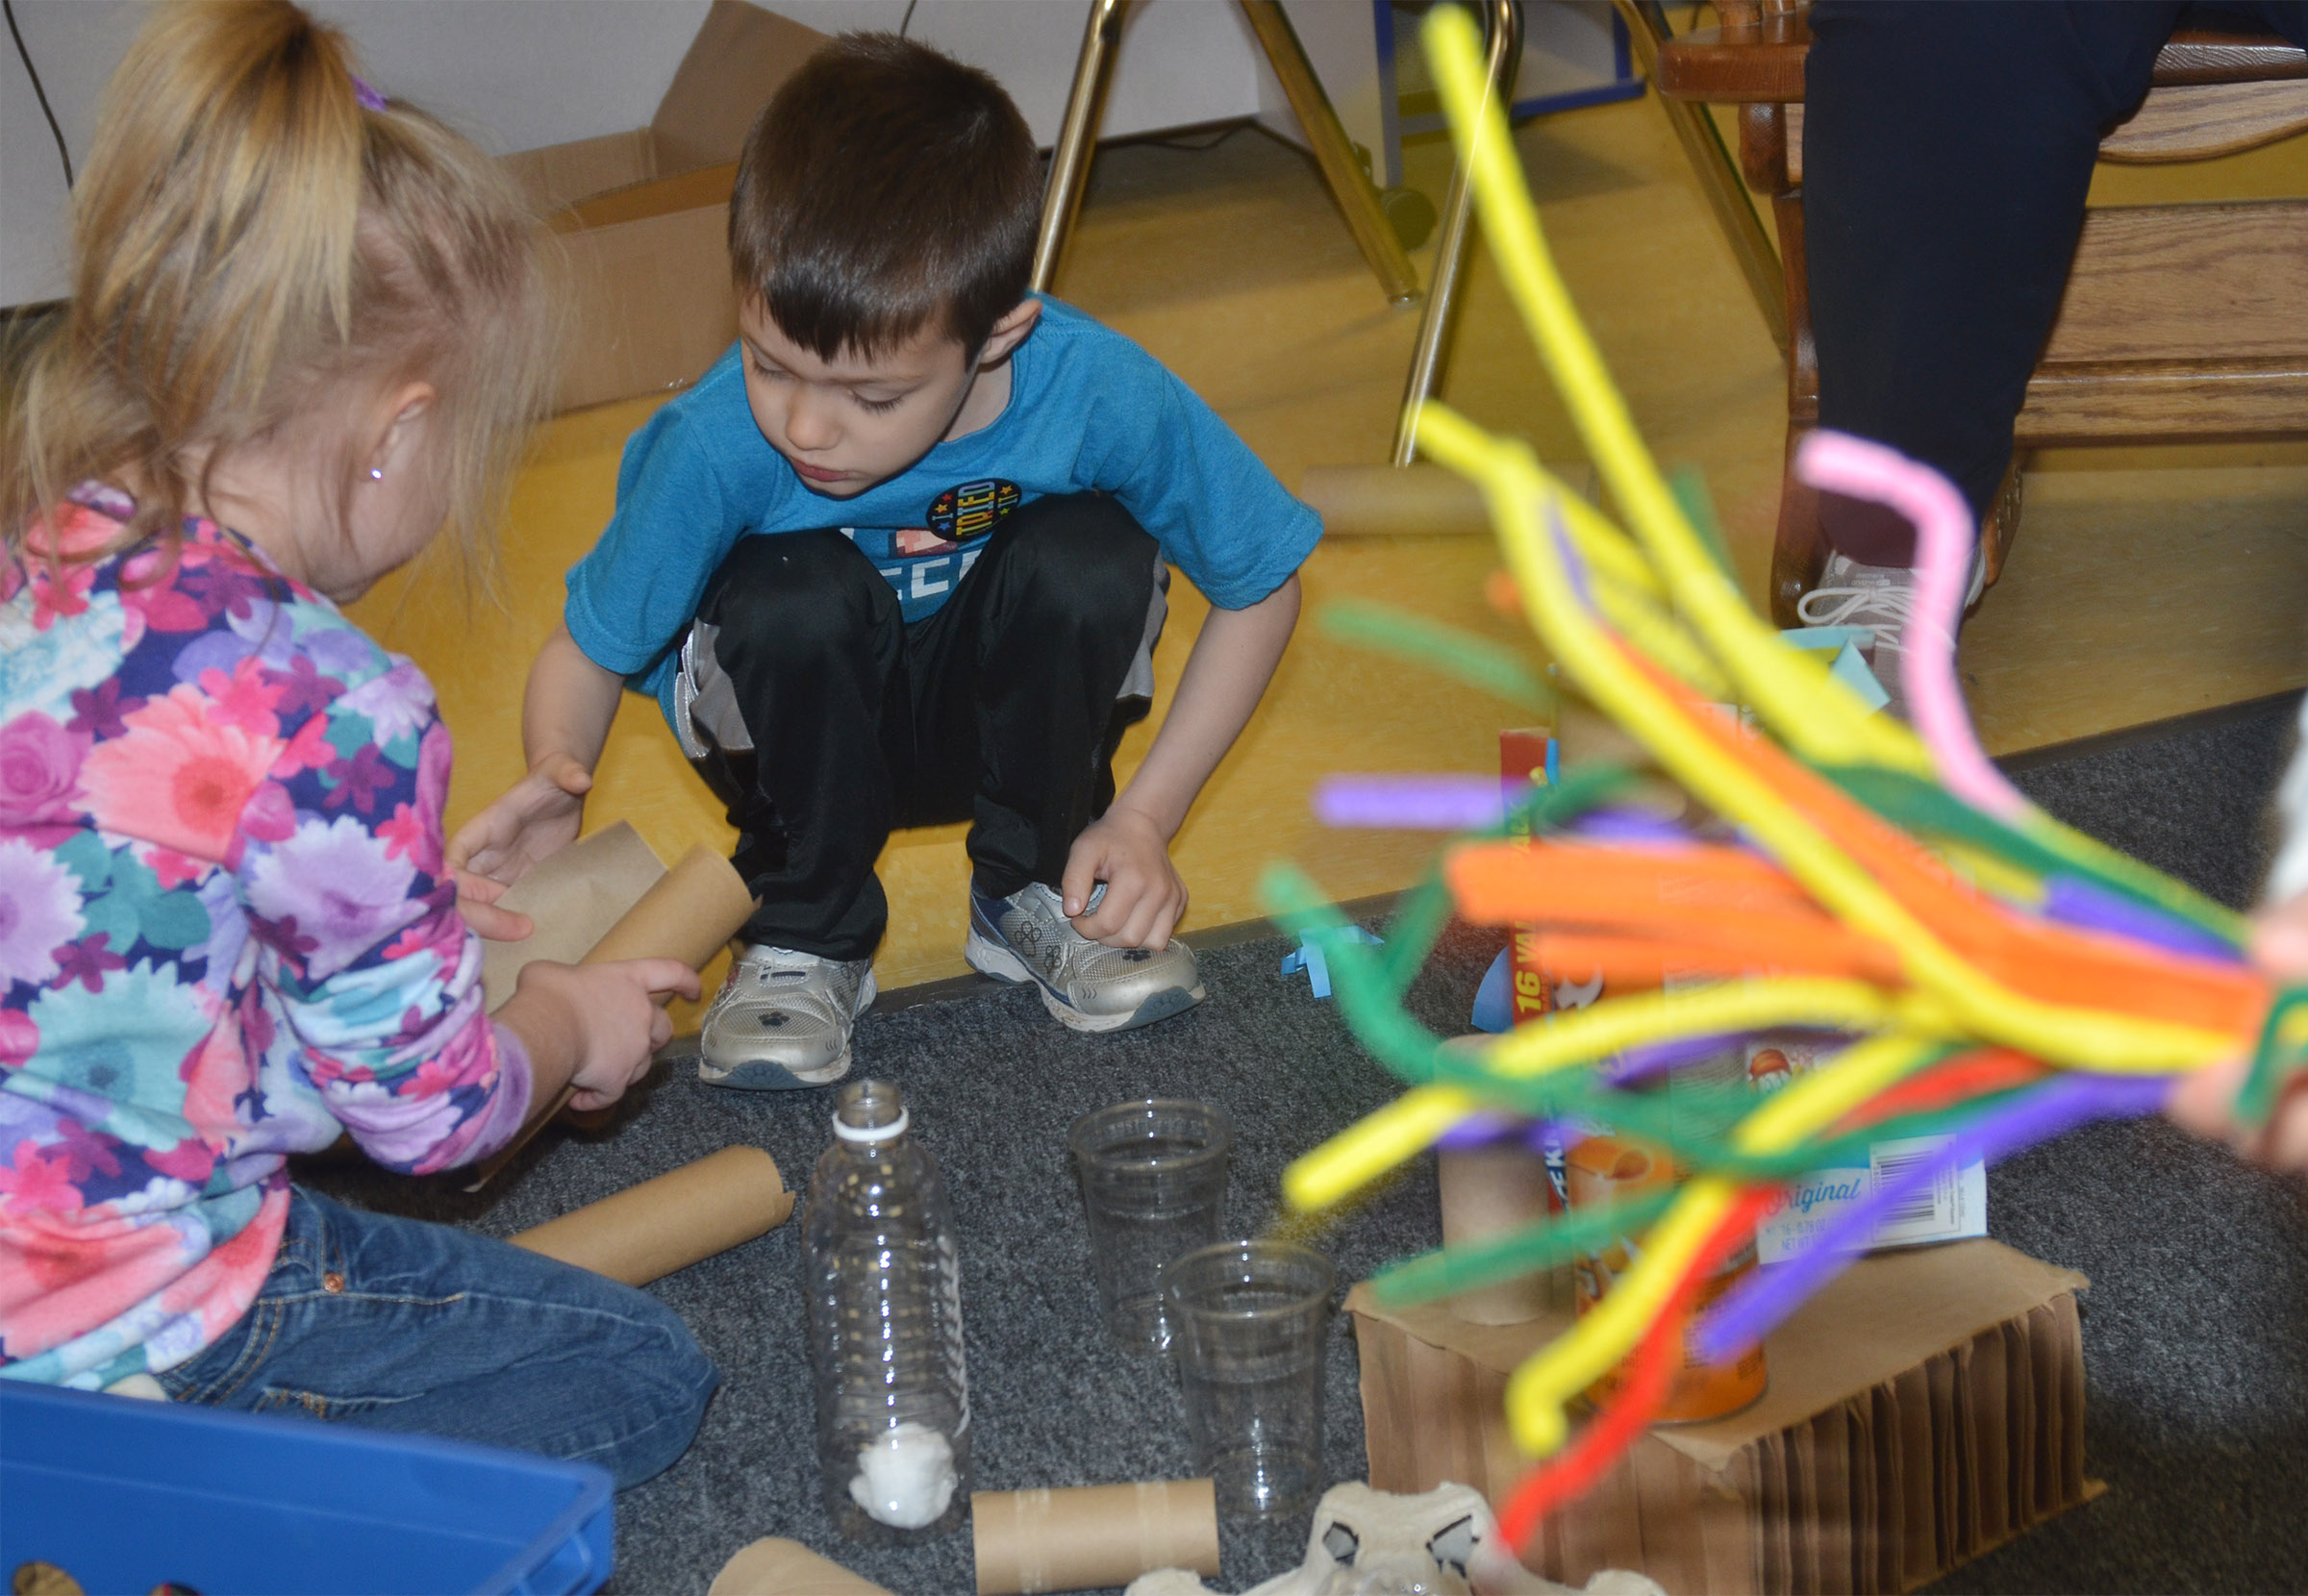 CES preschool students Trinity Dye, at left, and Levi Ritchie build together.